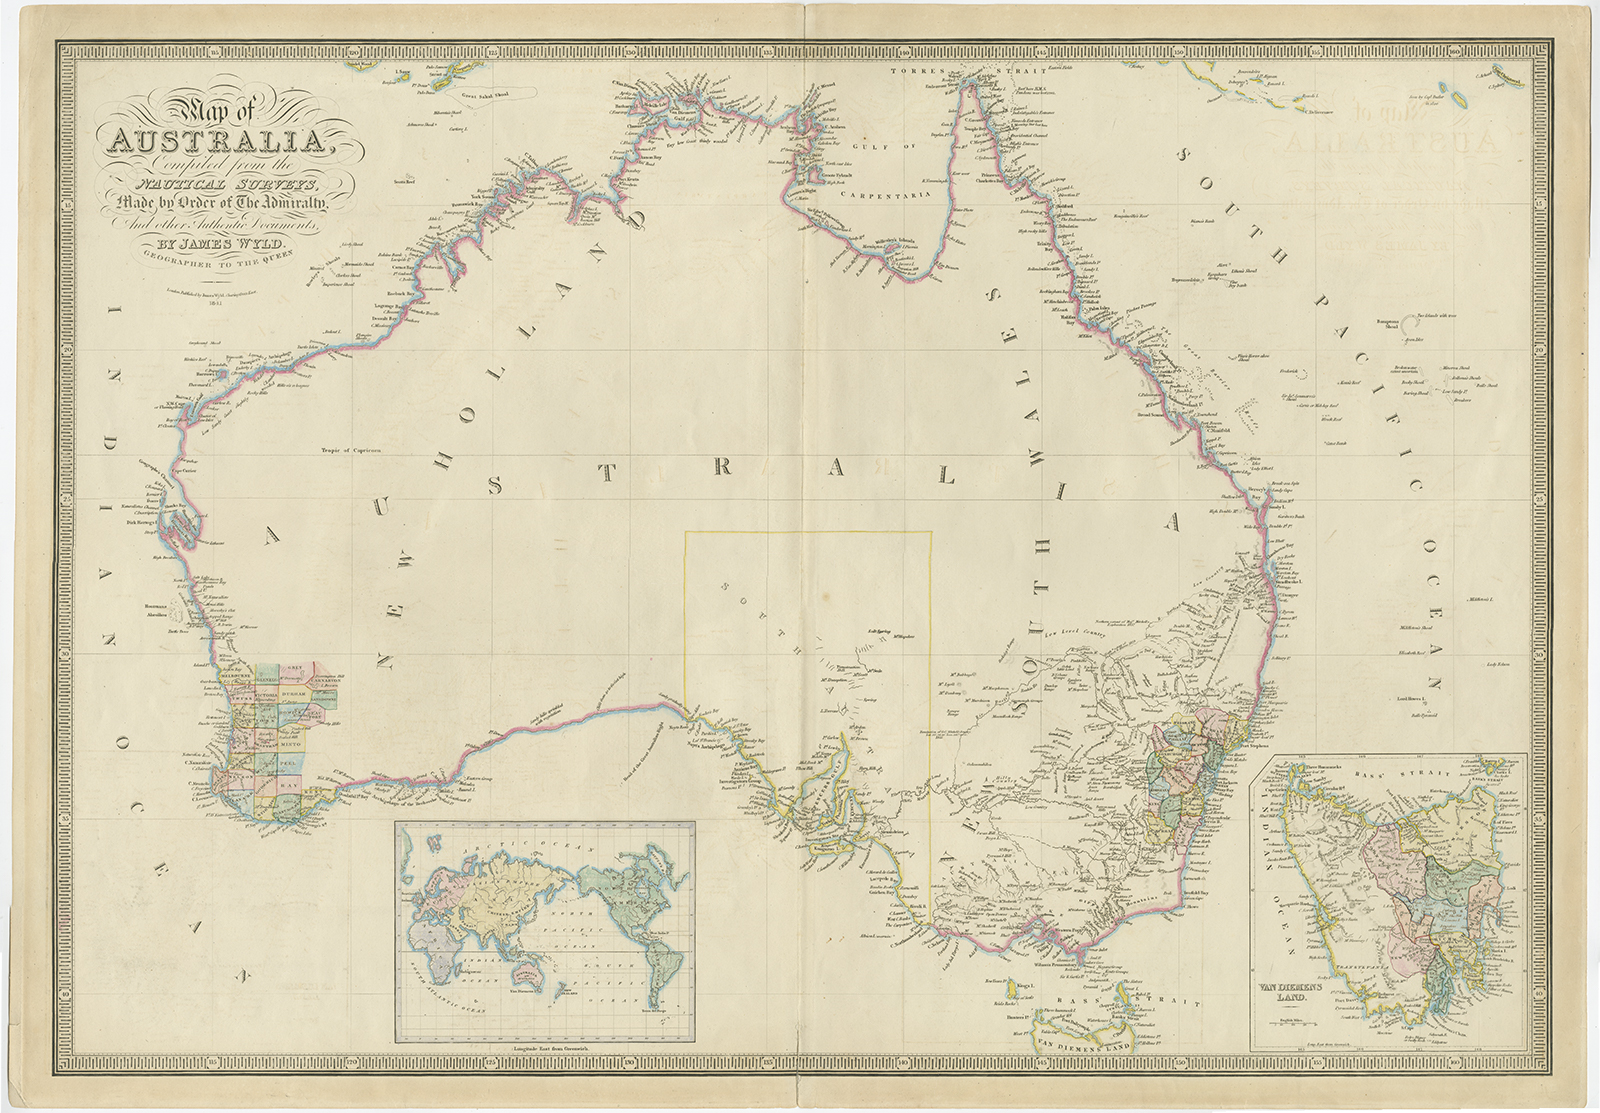 Antique Map Australia by Wyld (1850)Bartele Gallery